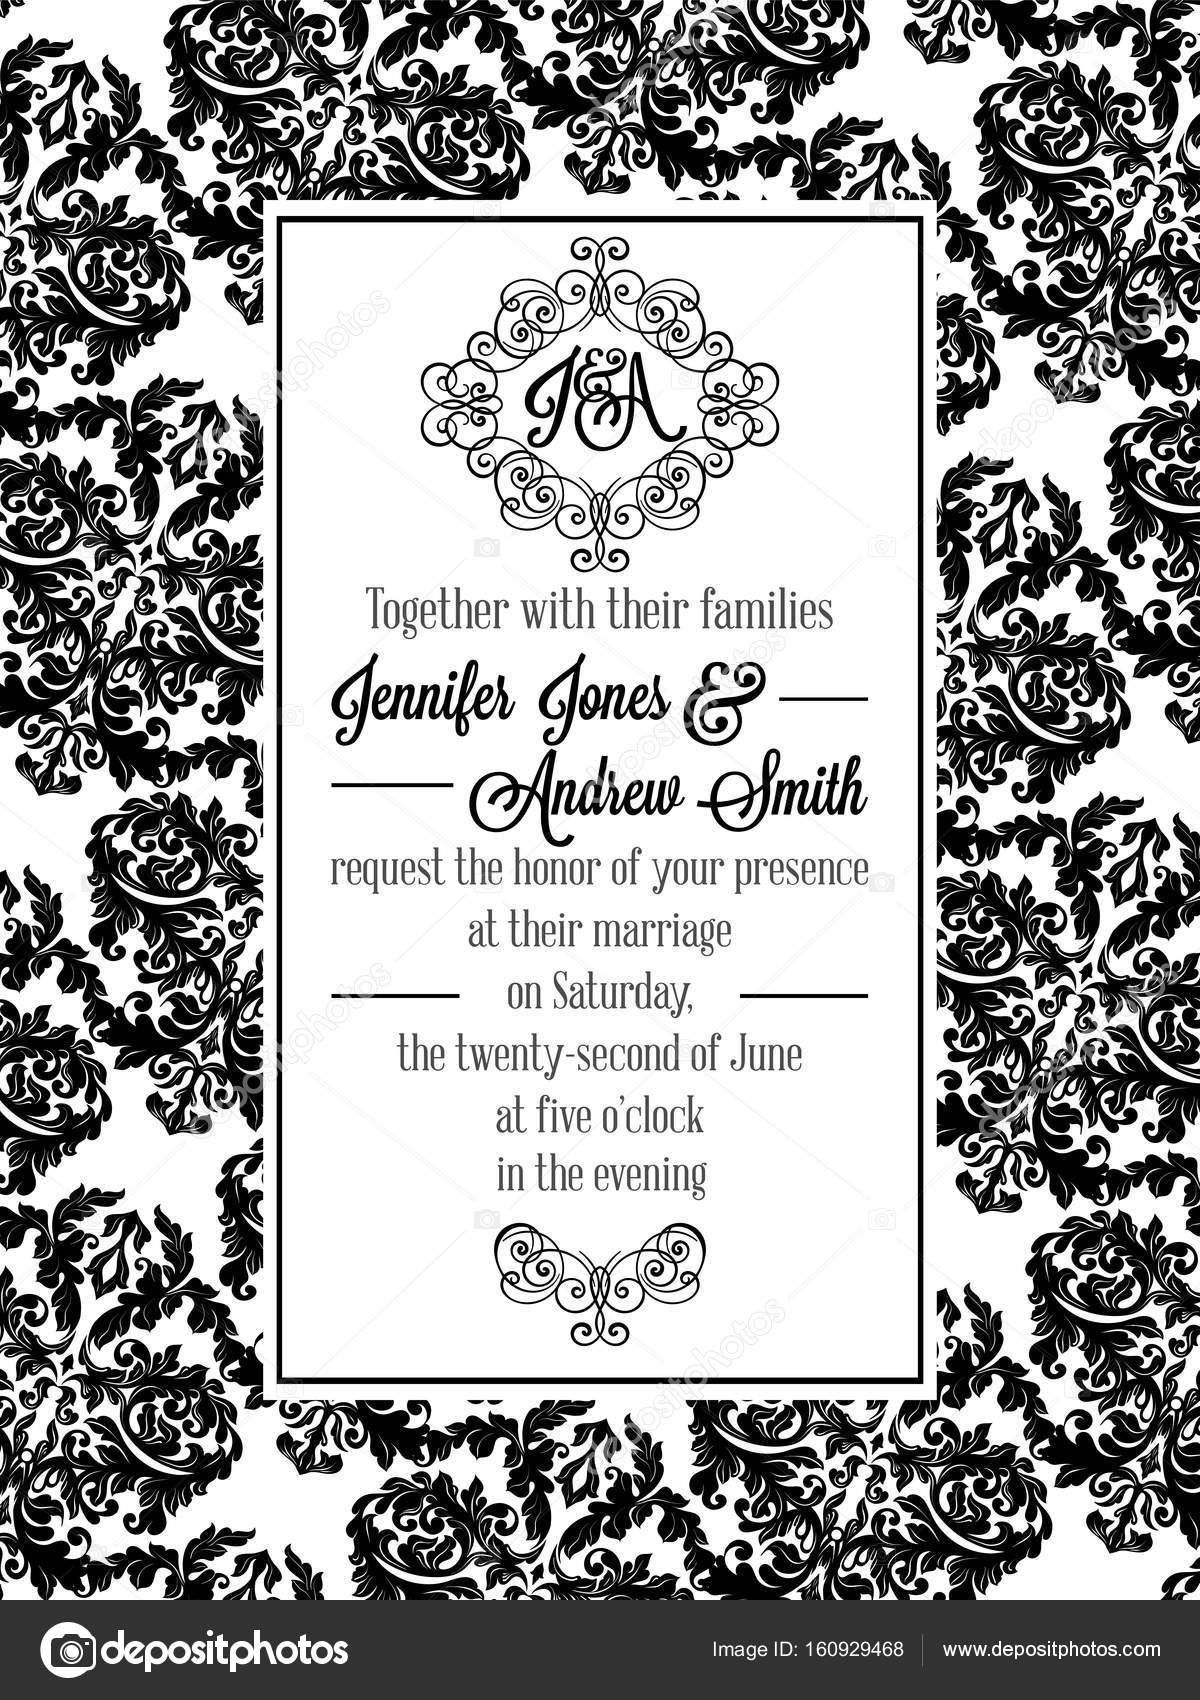 Vintage delicate formal invitation card with black and white lacy vintage delicate formal invitation card with black and white lacy design for wedding marriage bridal baroque style flourish decoration stopboris Image collections